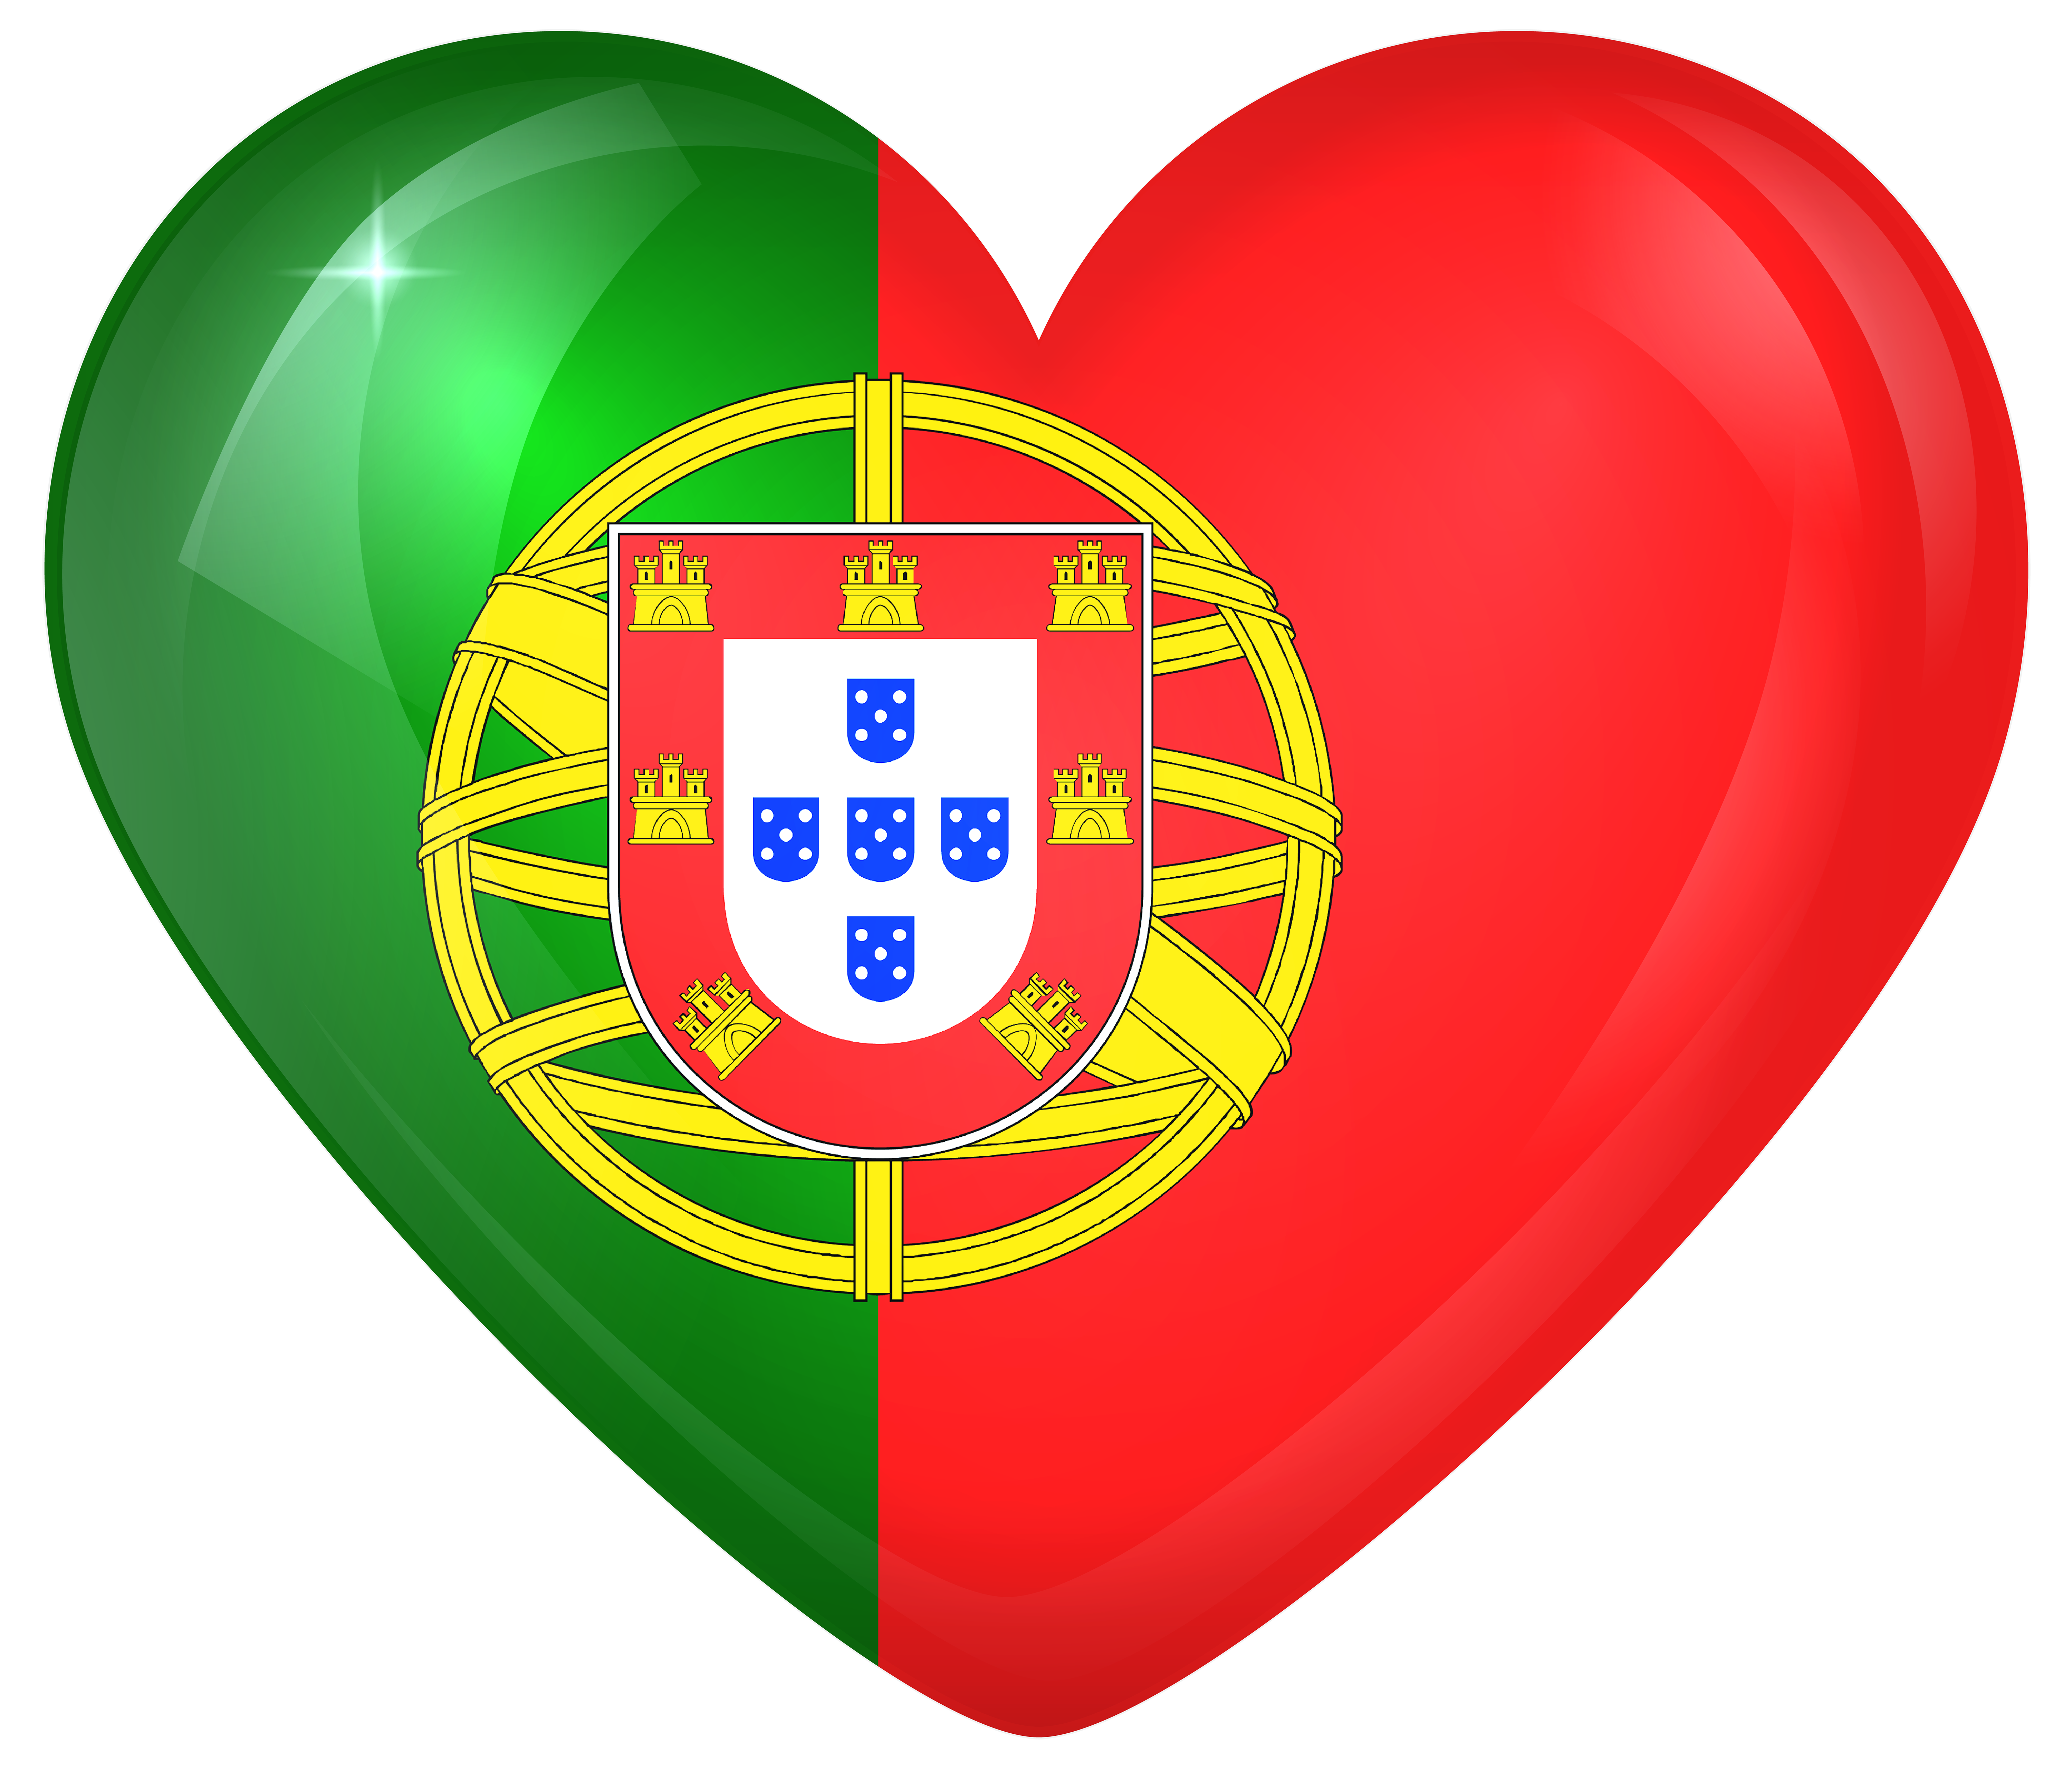 Portugal Large Heart Flag.